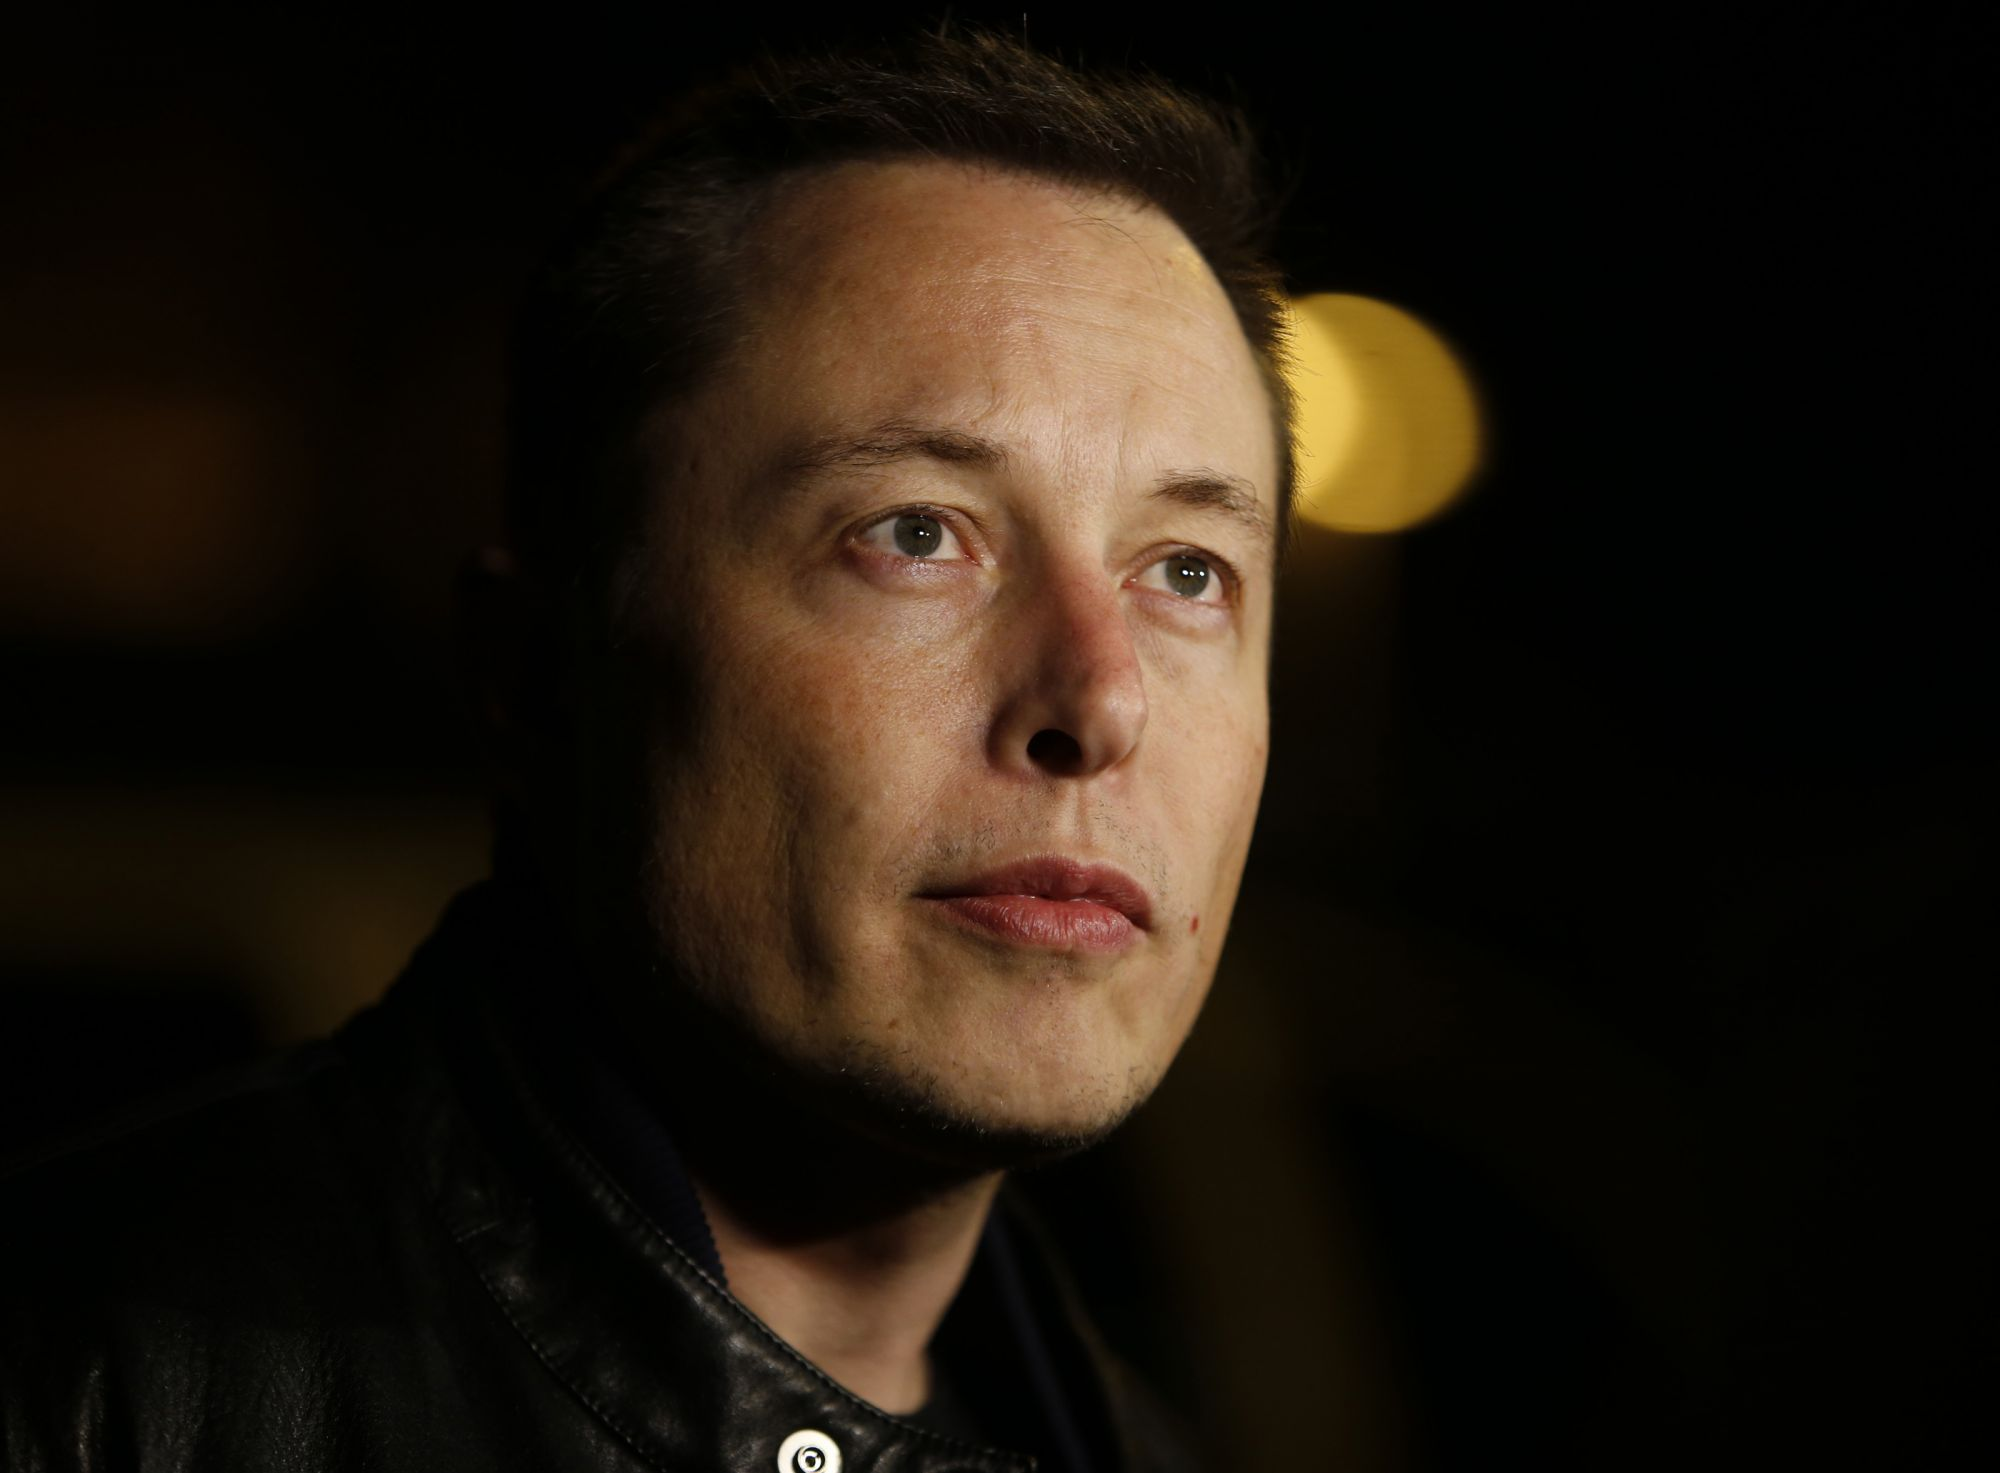 Tesla CEO Elon Musk talks to the media about the condition of the factory workers who were injured at the Tesla plant earlier in the day, outside of Santa Clara Valley Medical Center in San Jose, Calif. on Wednesday, Nov. 13, 2013.  (Nhat V. Meyer/Bay Area News Group) (Photo by MediaNews Group/Bay Area News via Getty Images)